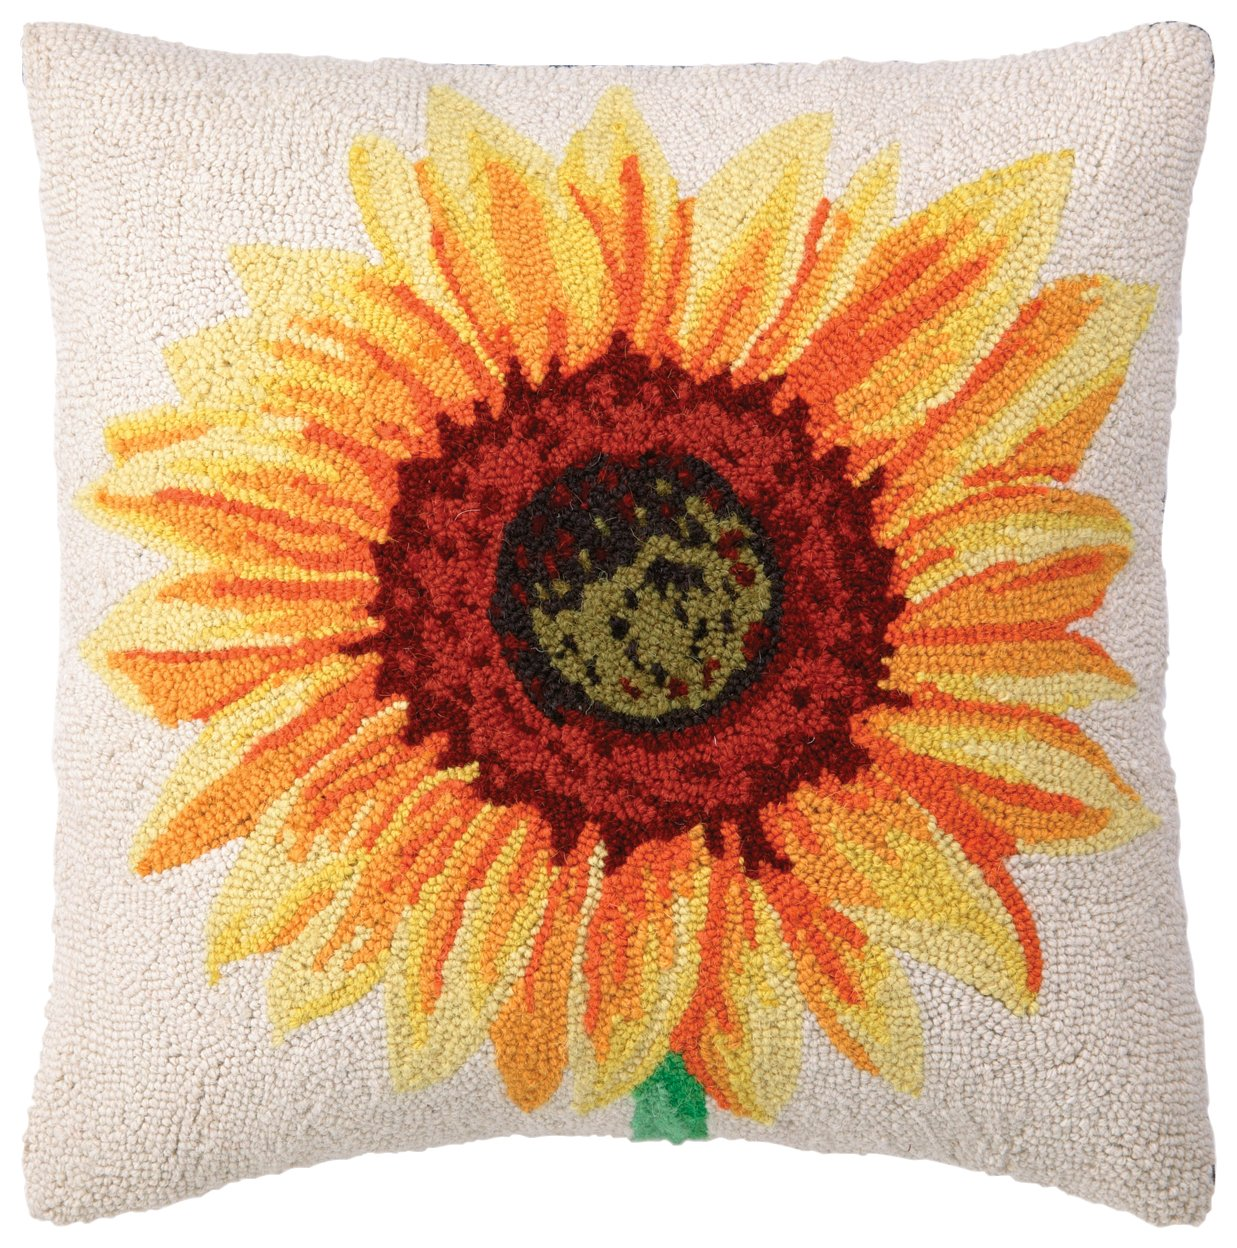 Peking Handicraft Hook Pillow Yellow Sunflower 18-by-18-Inch